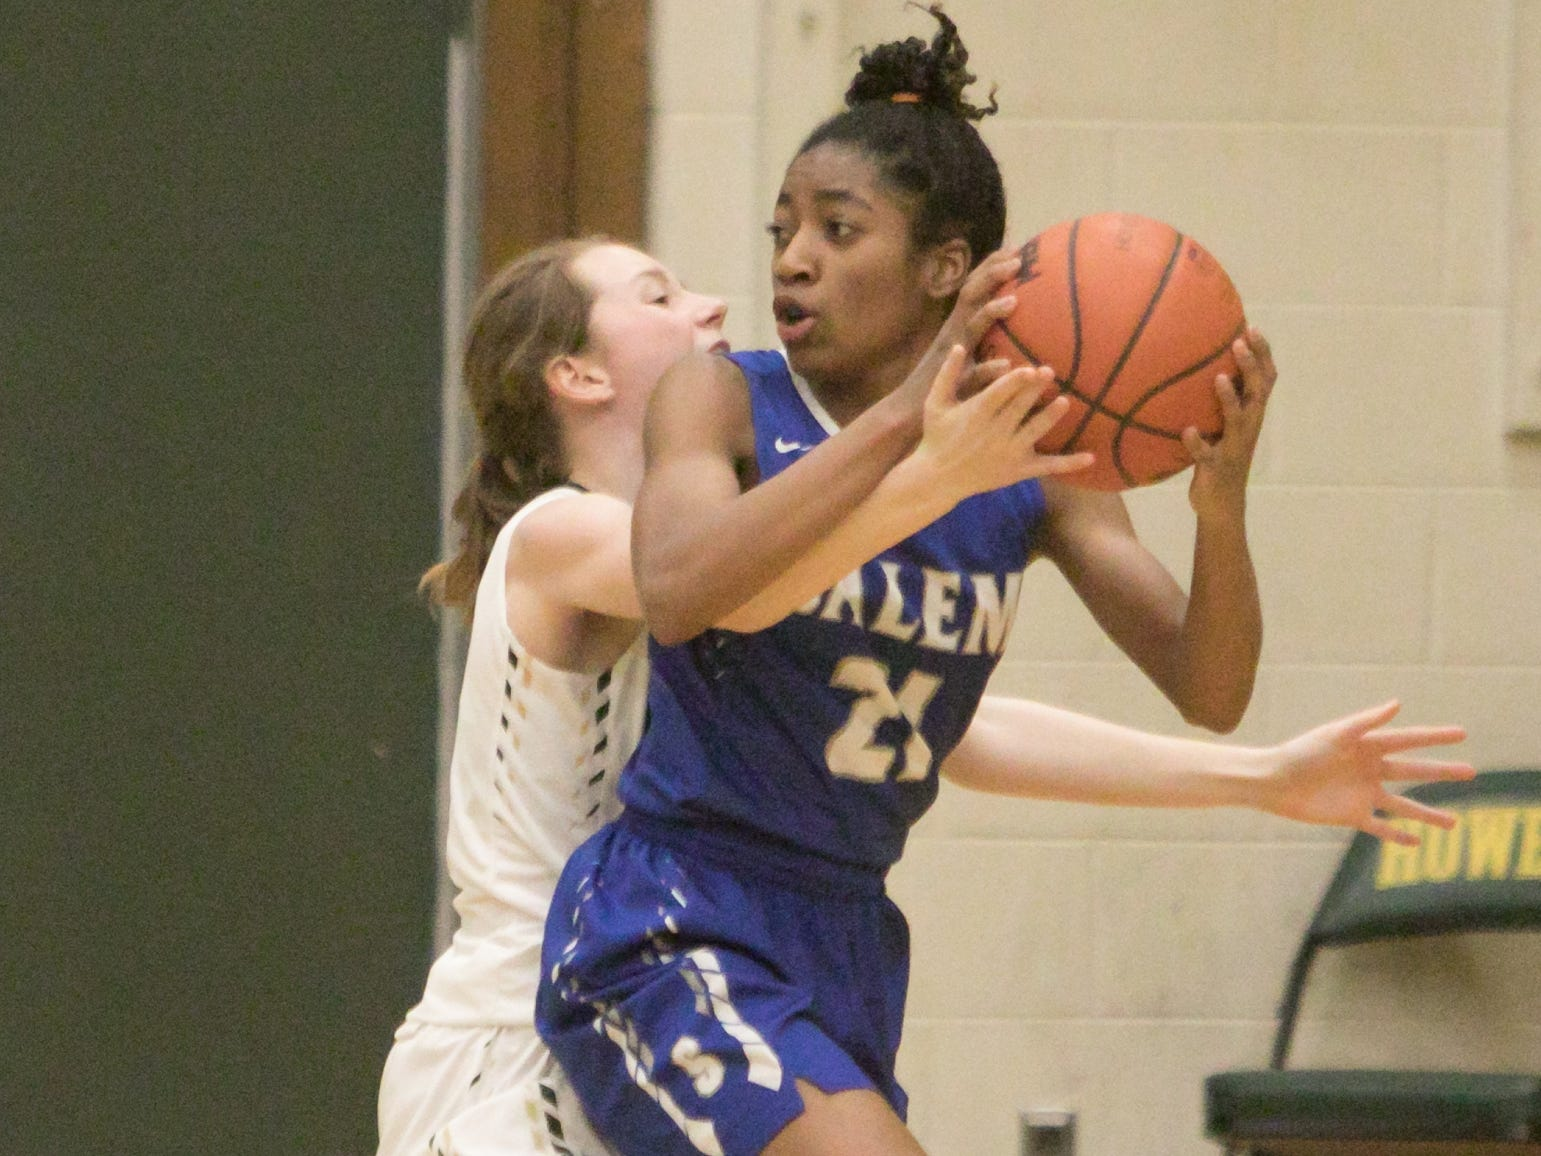 Salem's Mattison Joyner, guarded by Howell's Lillia McCurdy, had eight points, five steals and four deflections in a 48-17 loss to the Highlanders on Tuesday, Feb. 5, 2019.